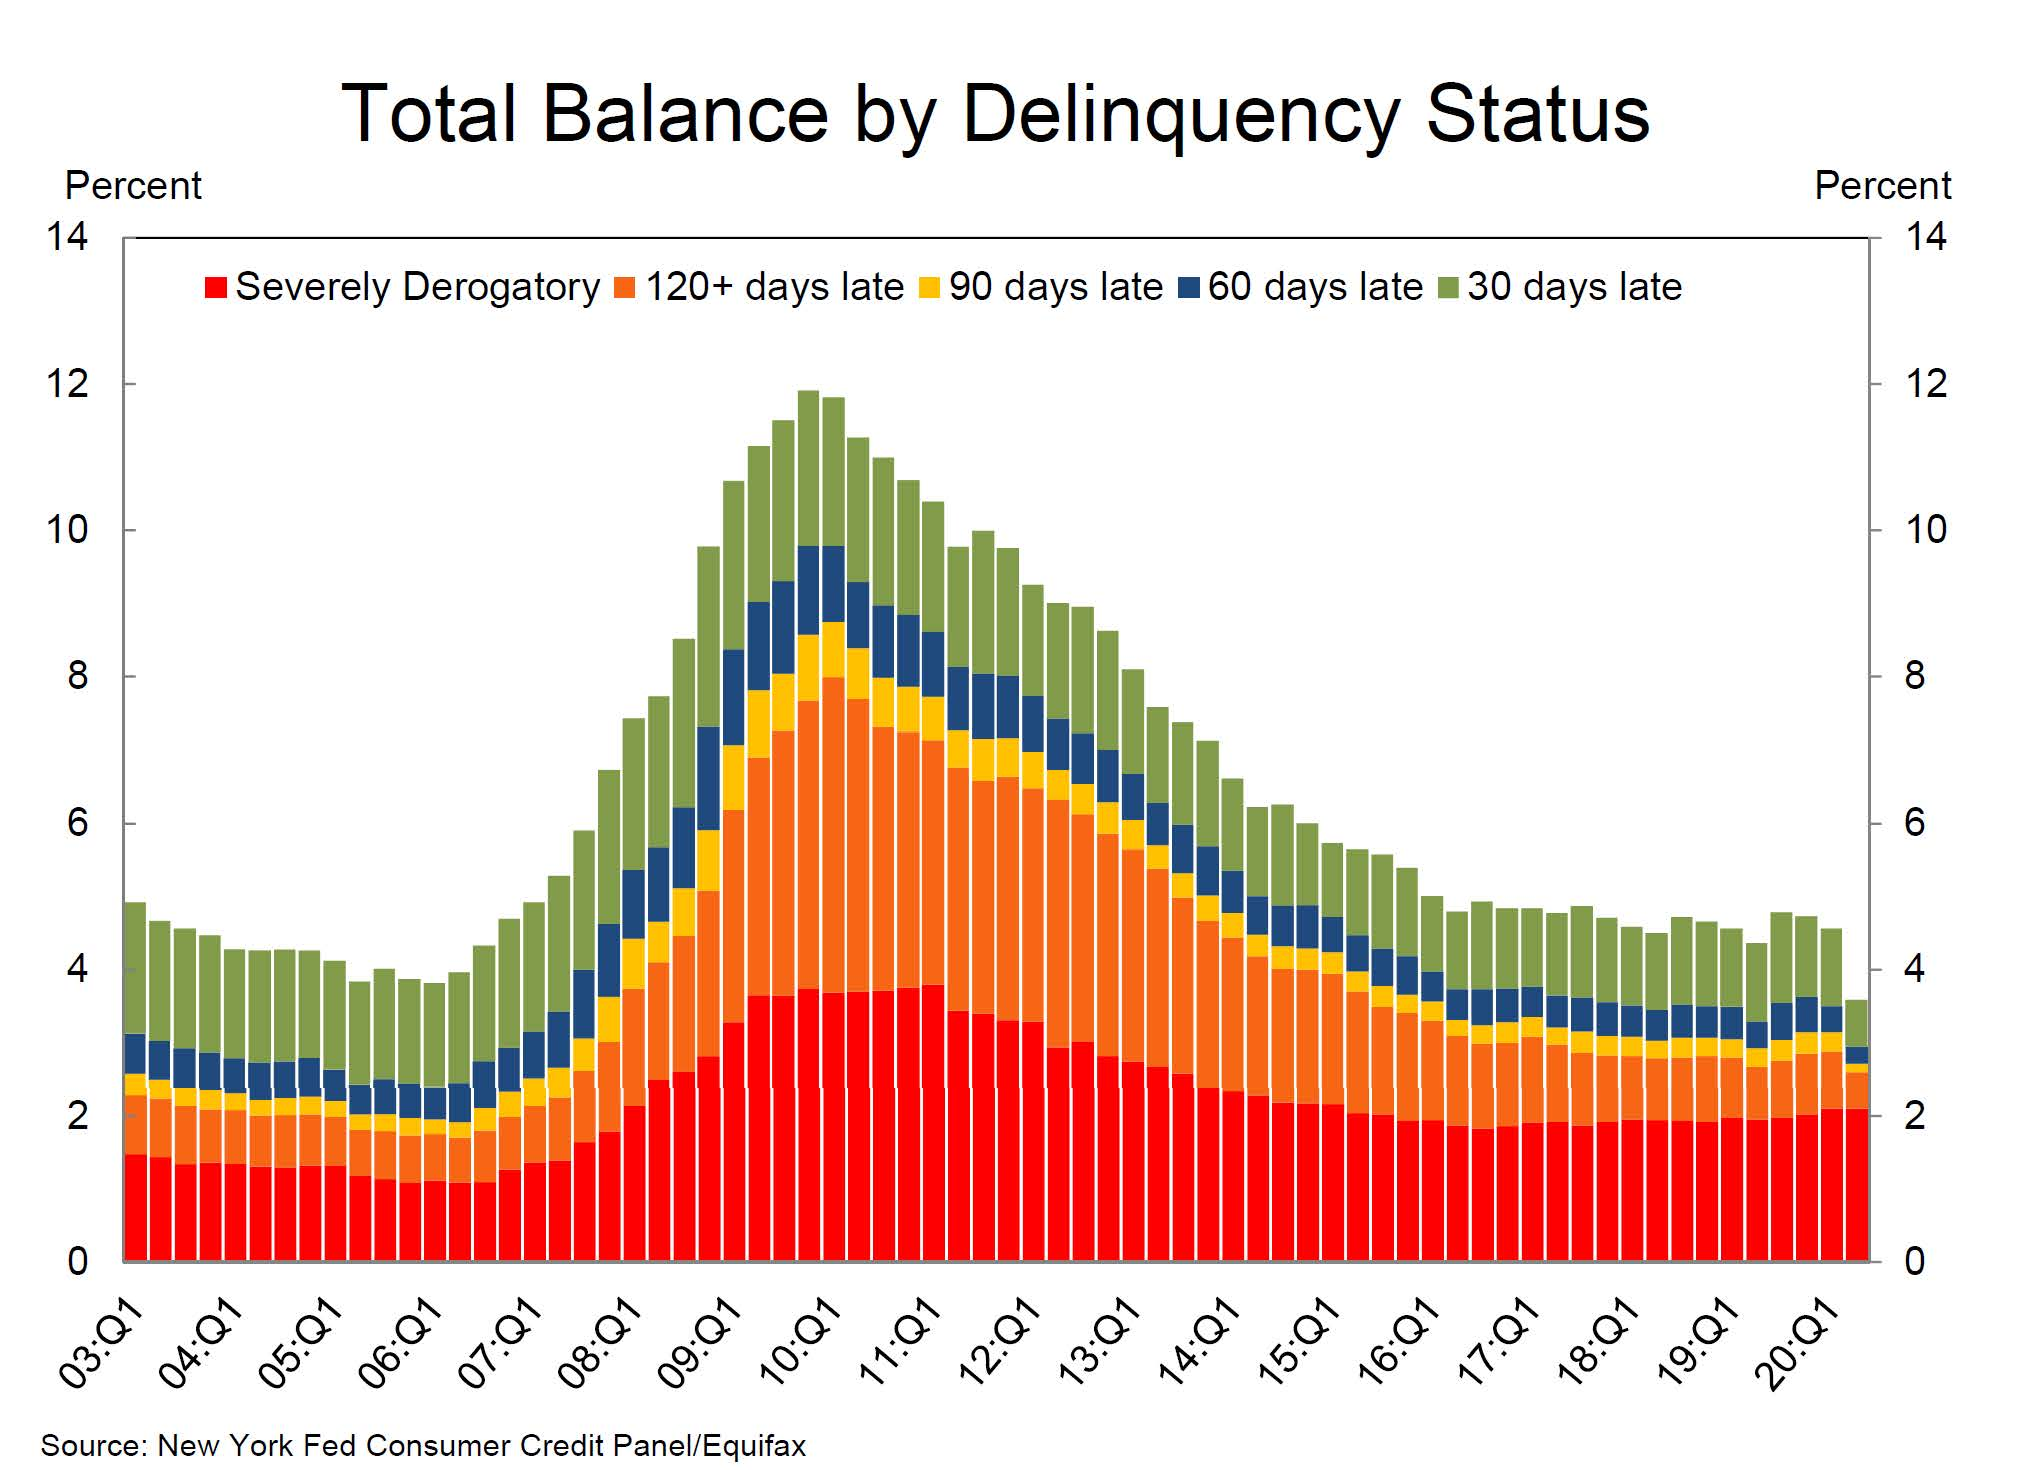 Q2 2020 Total Delenquency Status